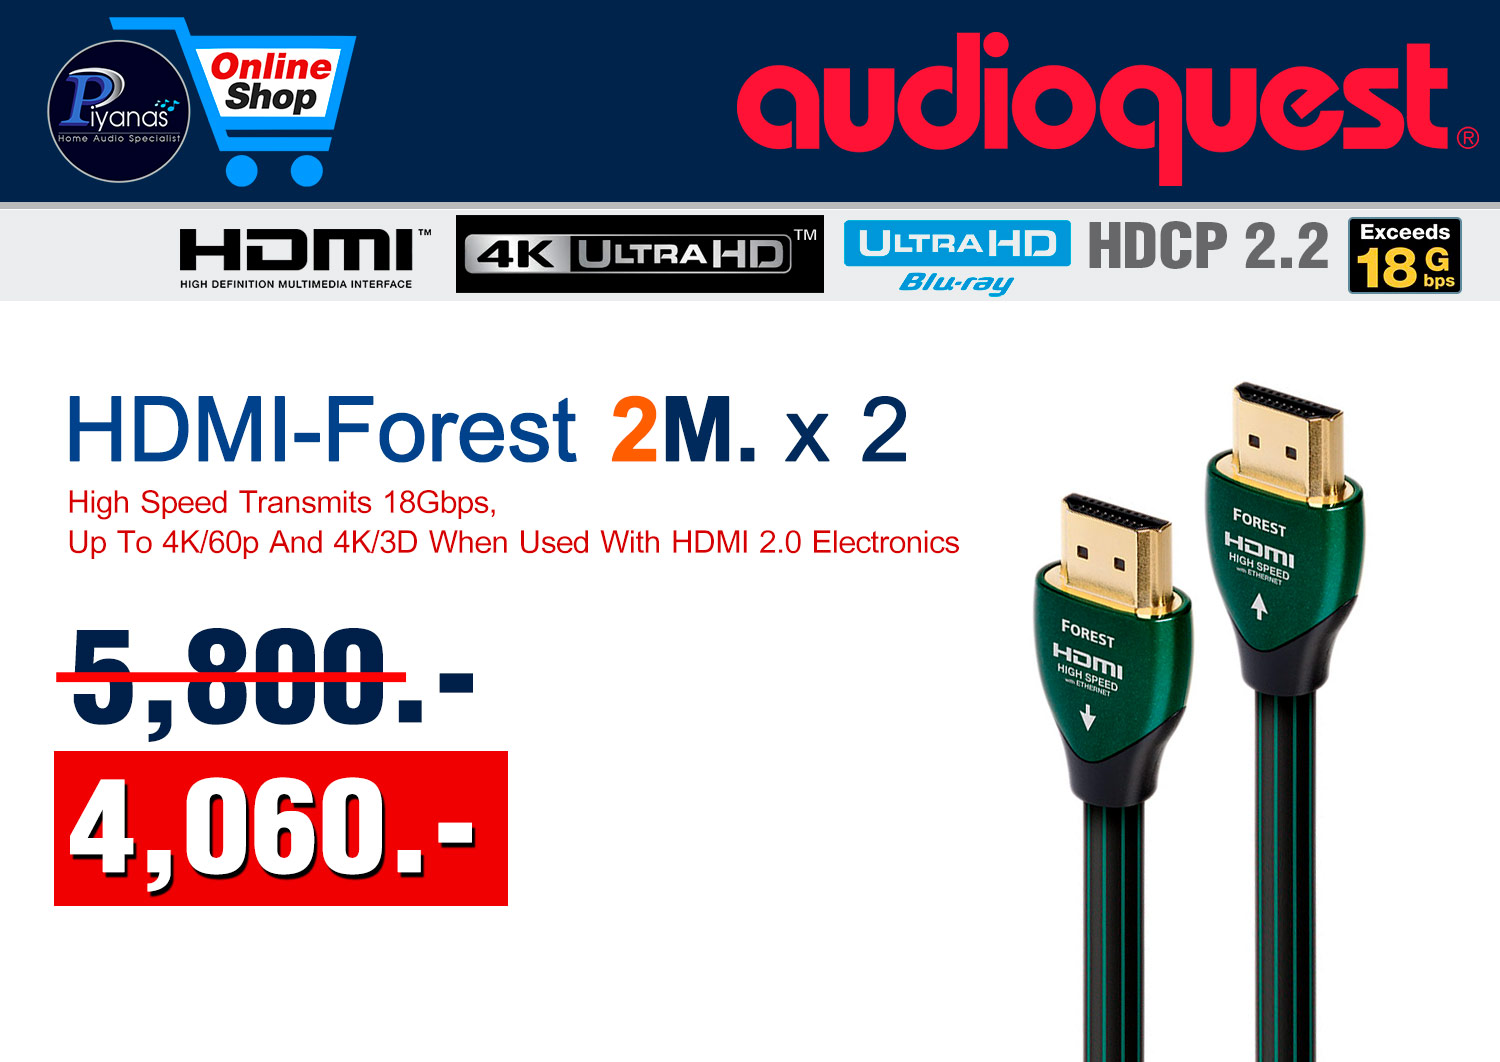 HDMI-FOREST 2M. x2